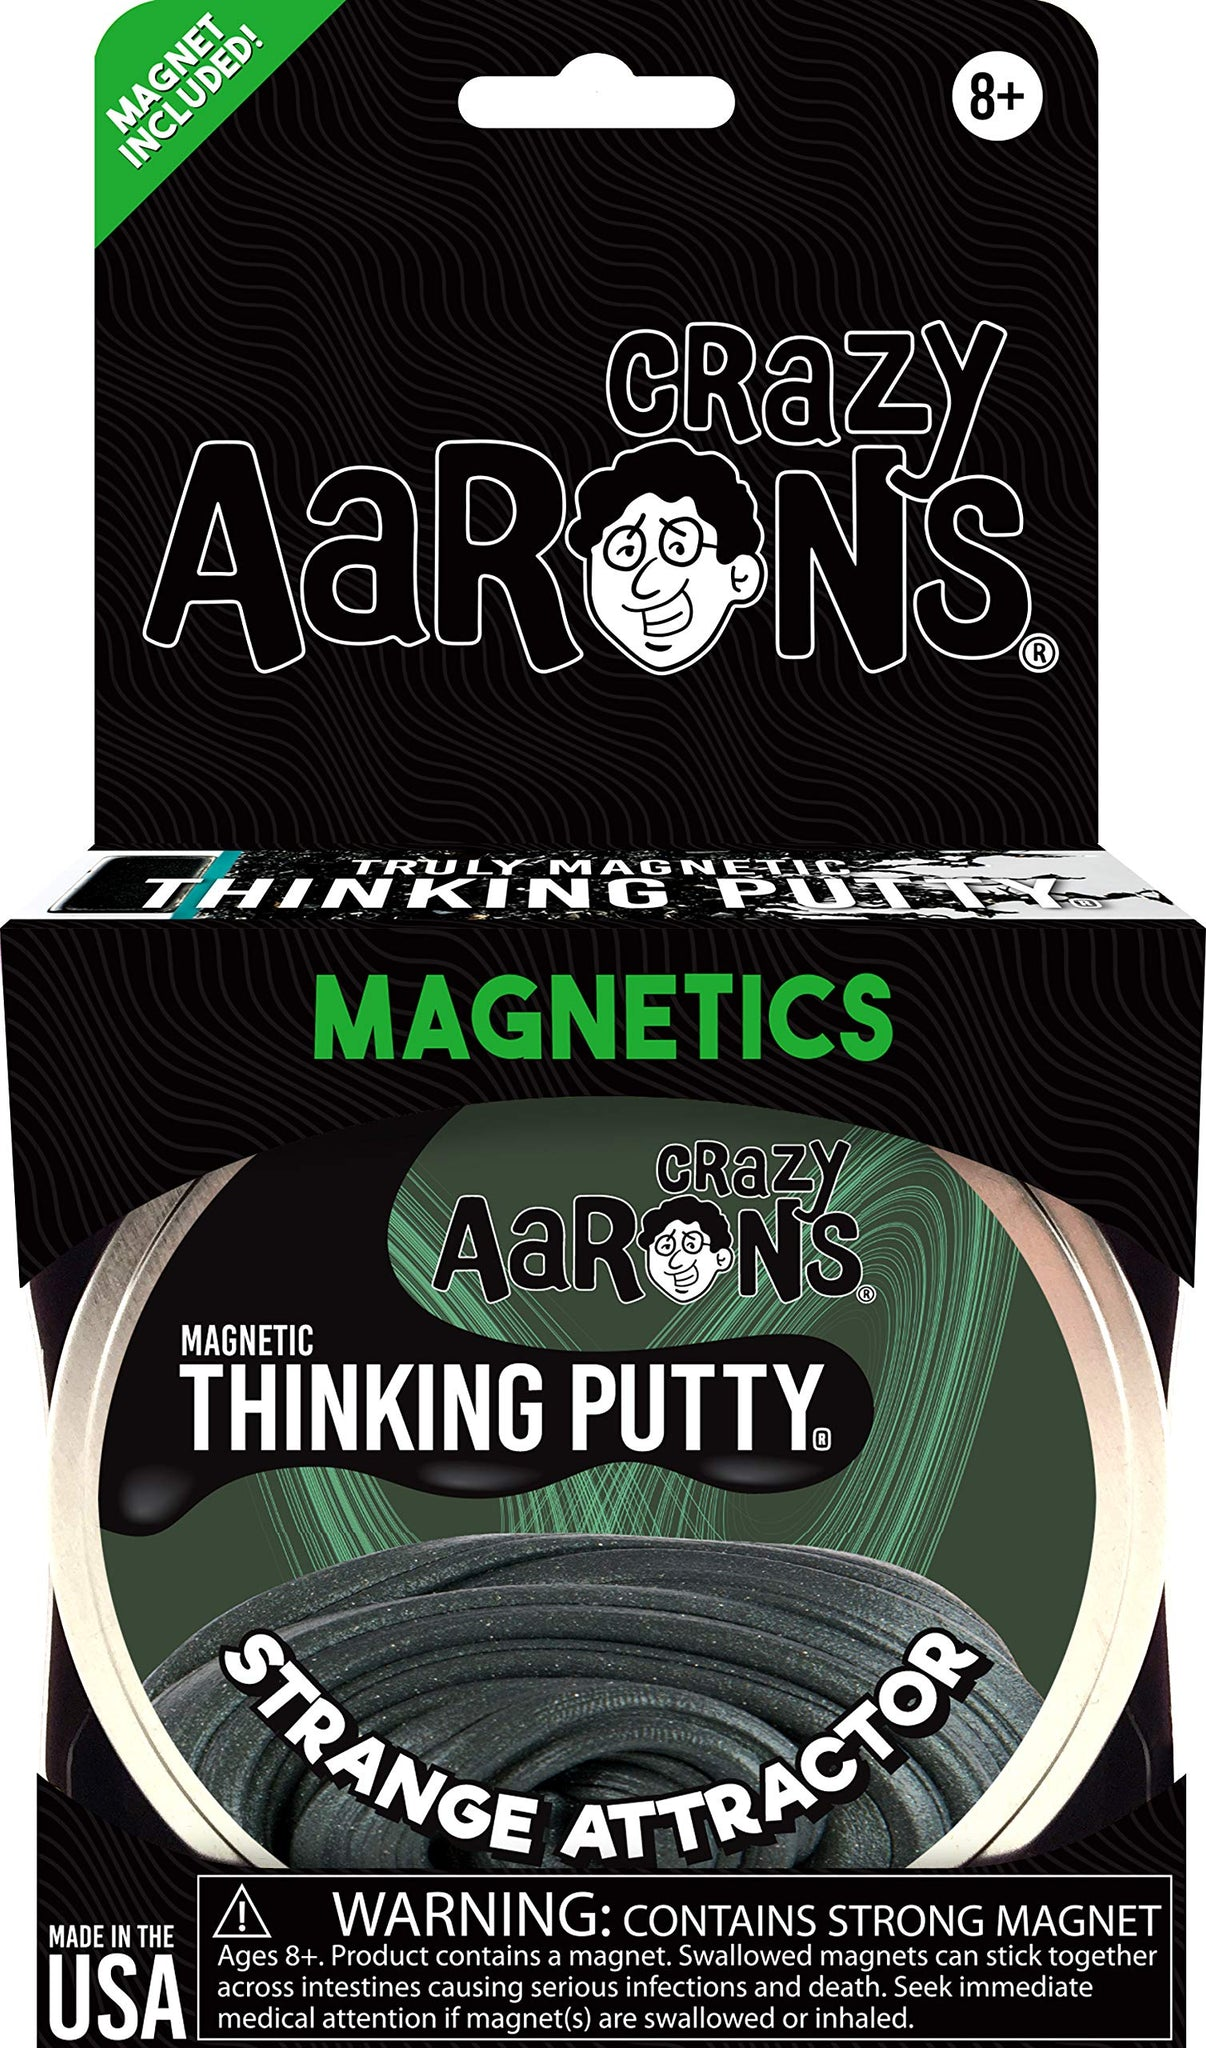 "Crazy Aaron's Thinking Putty 4"" Tin - Strange Attractor - Magnetic Putty with Memory Effect, Soft Texture - Never Dries Out"